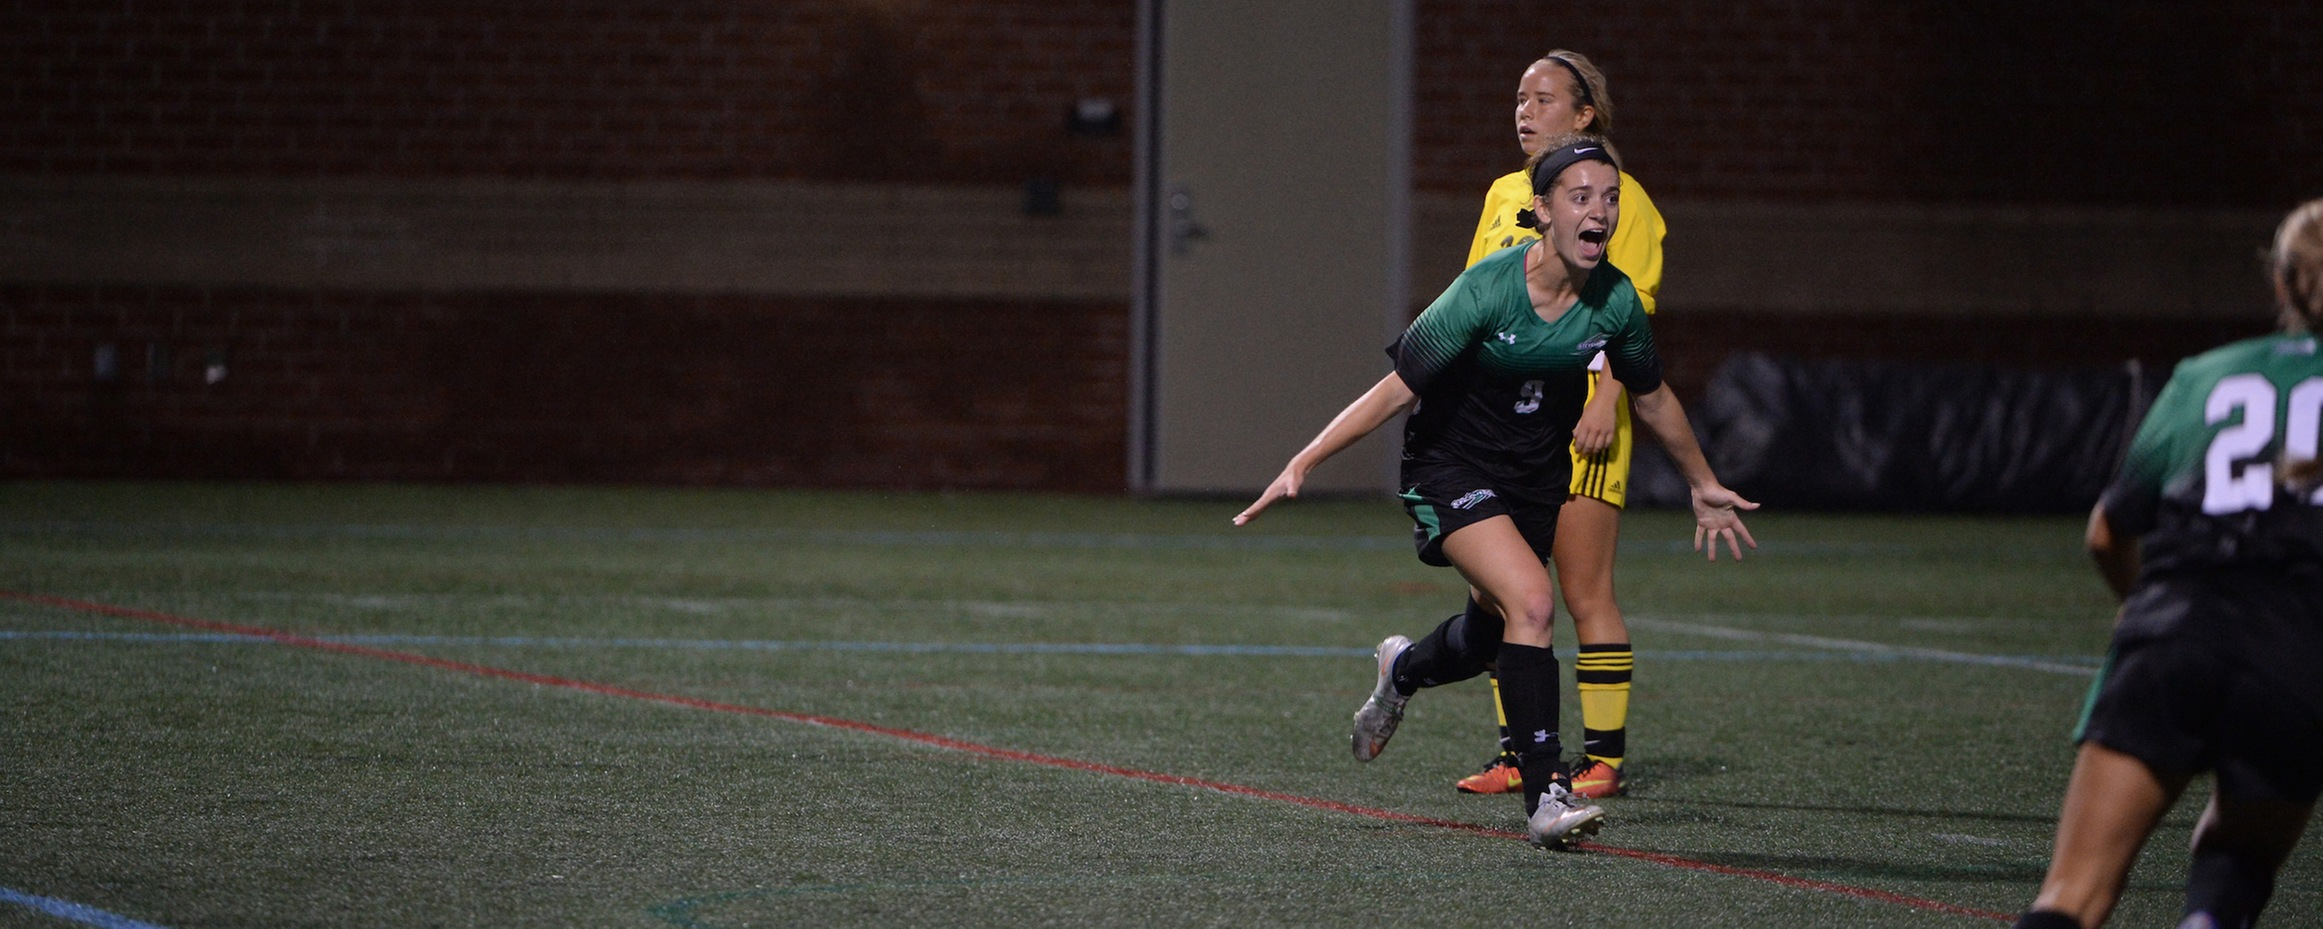 Mustangs Upset No. 8 Johns Hopkins in Overtime, McKee Sets Save Record